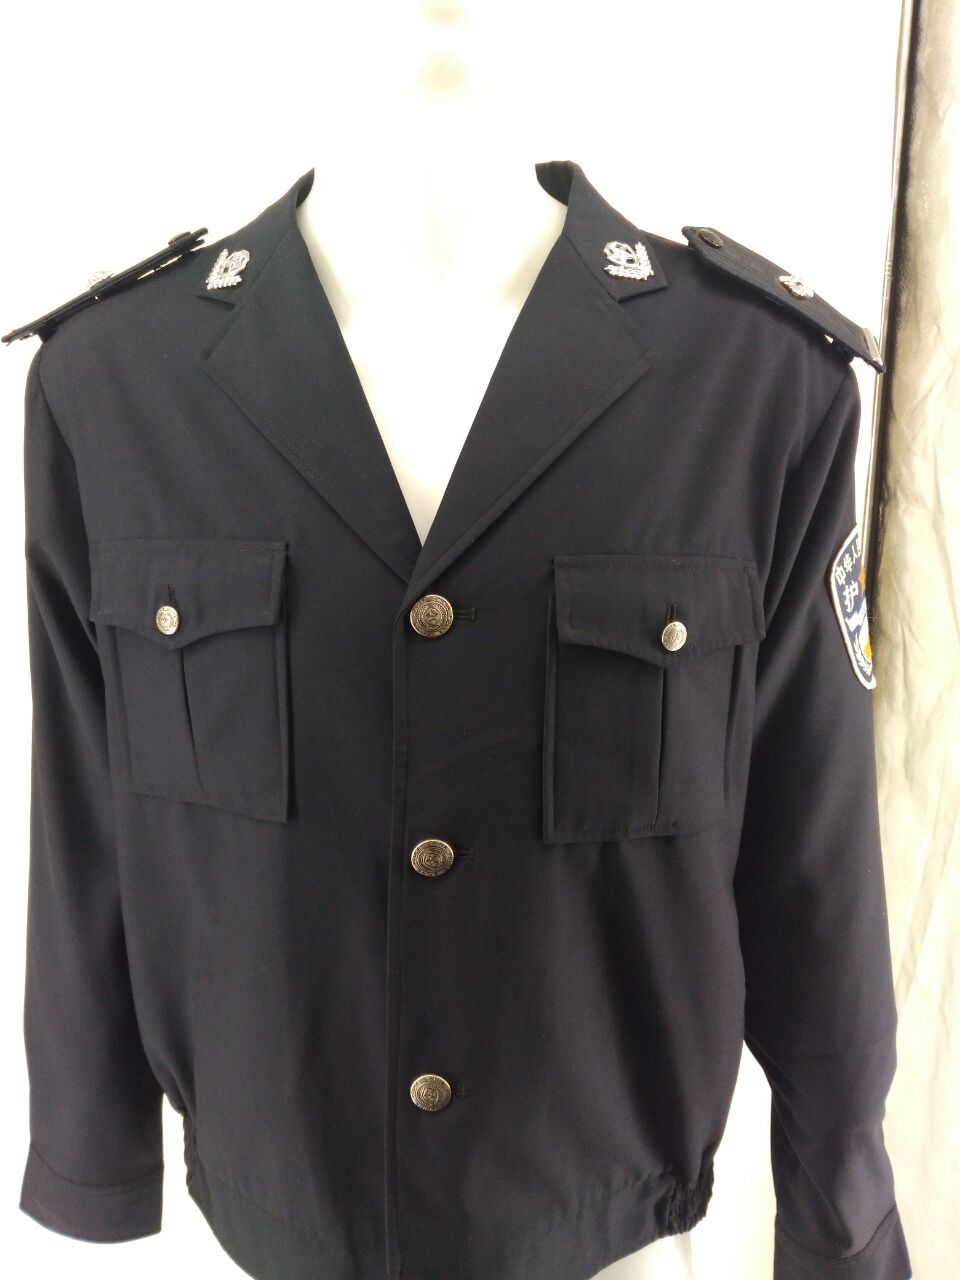 Spring Military Security Work Uniform